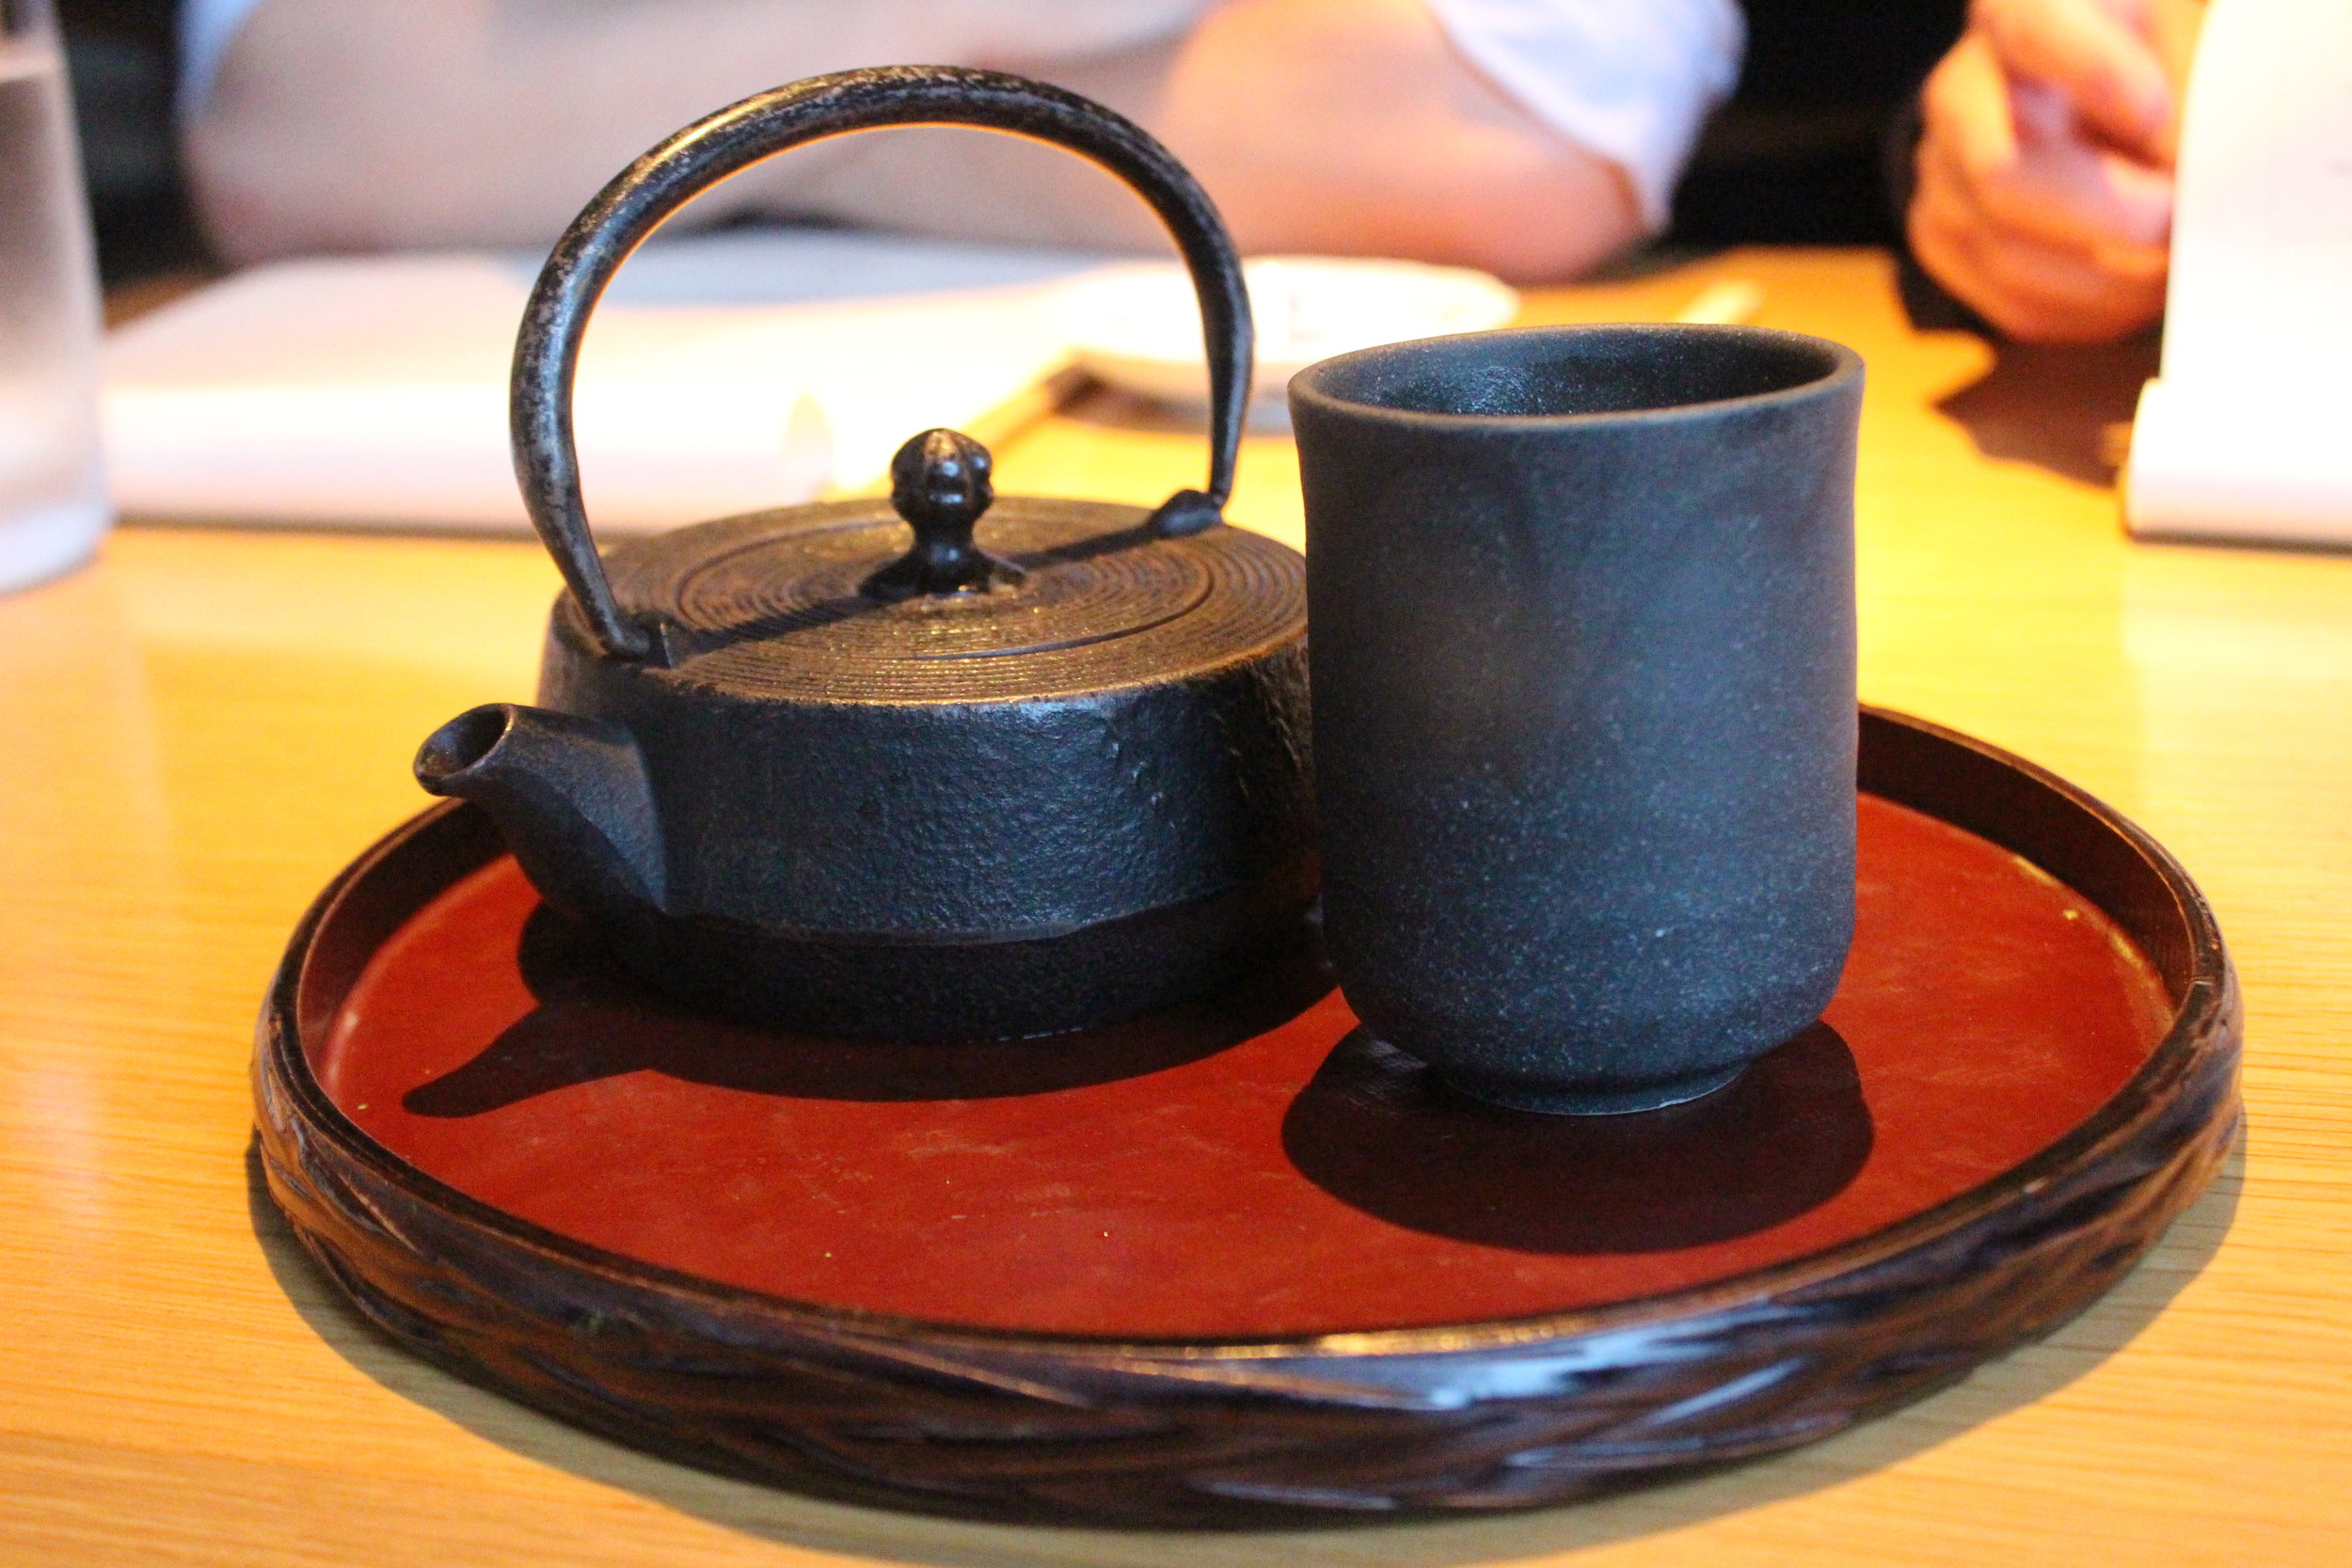 Roasted Rice Tea